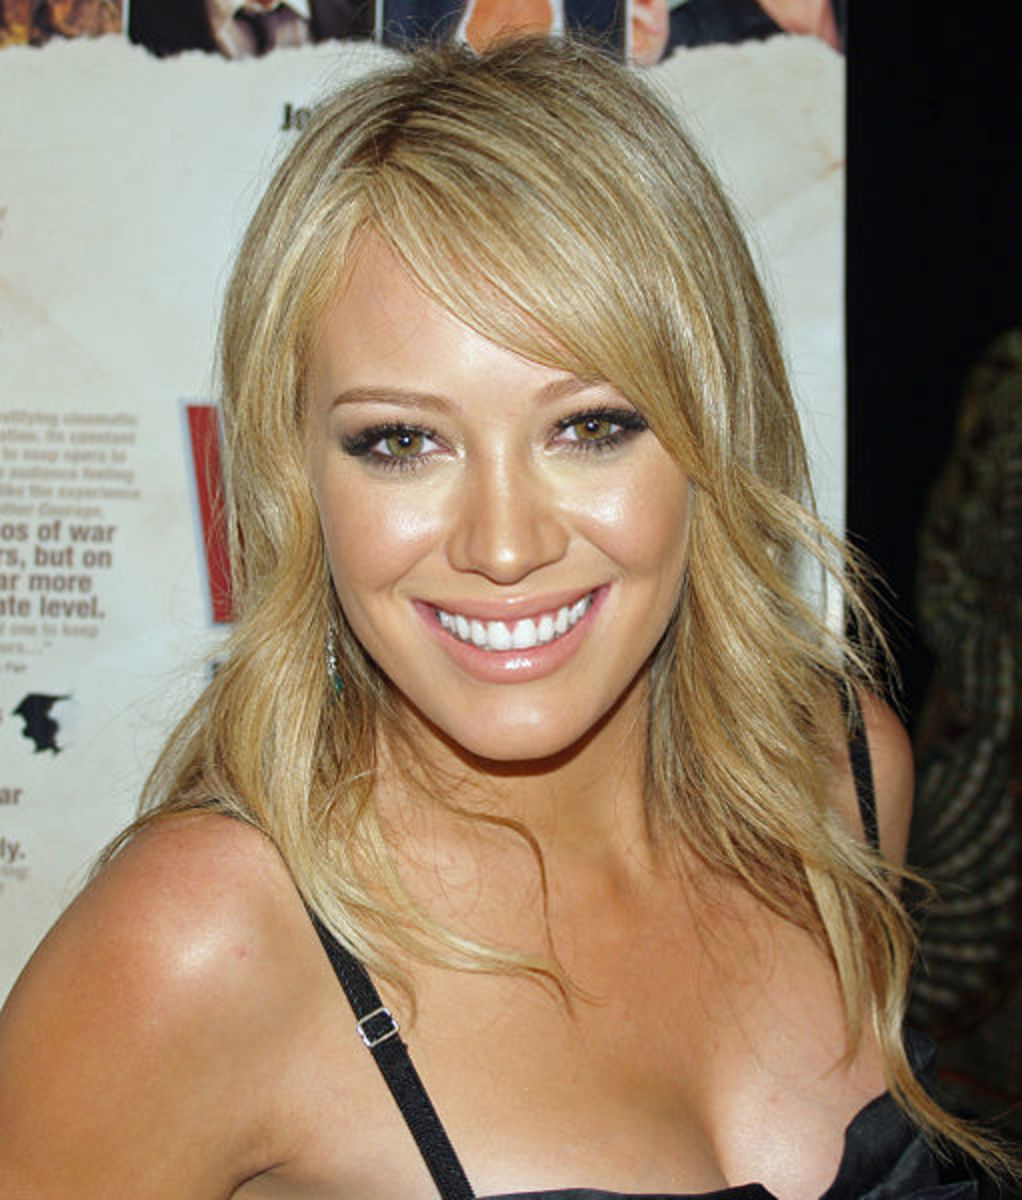 Hilary Duff also used apple cider vinegar on her skin. Source: Flickr (CC-BY-2.0)